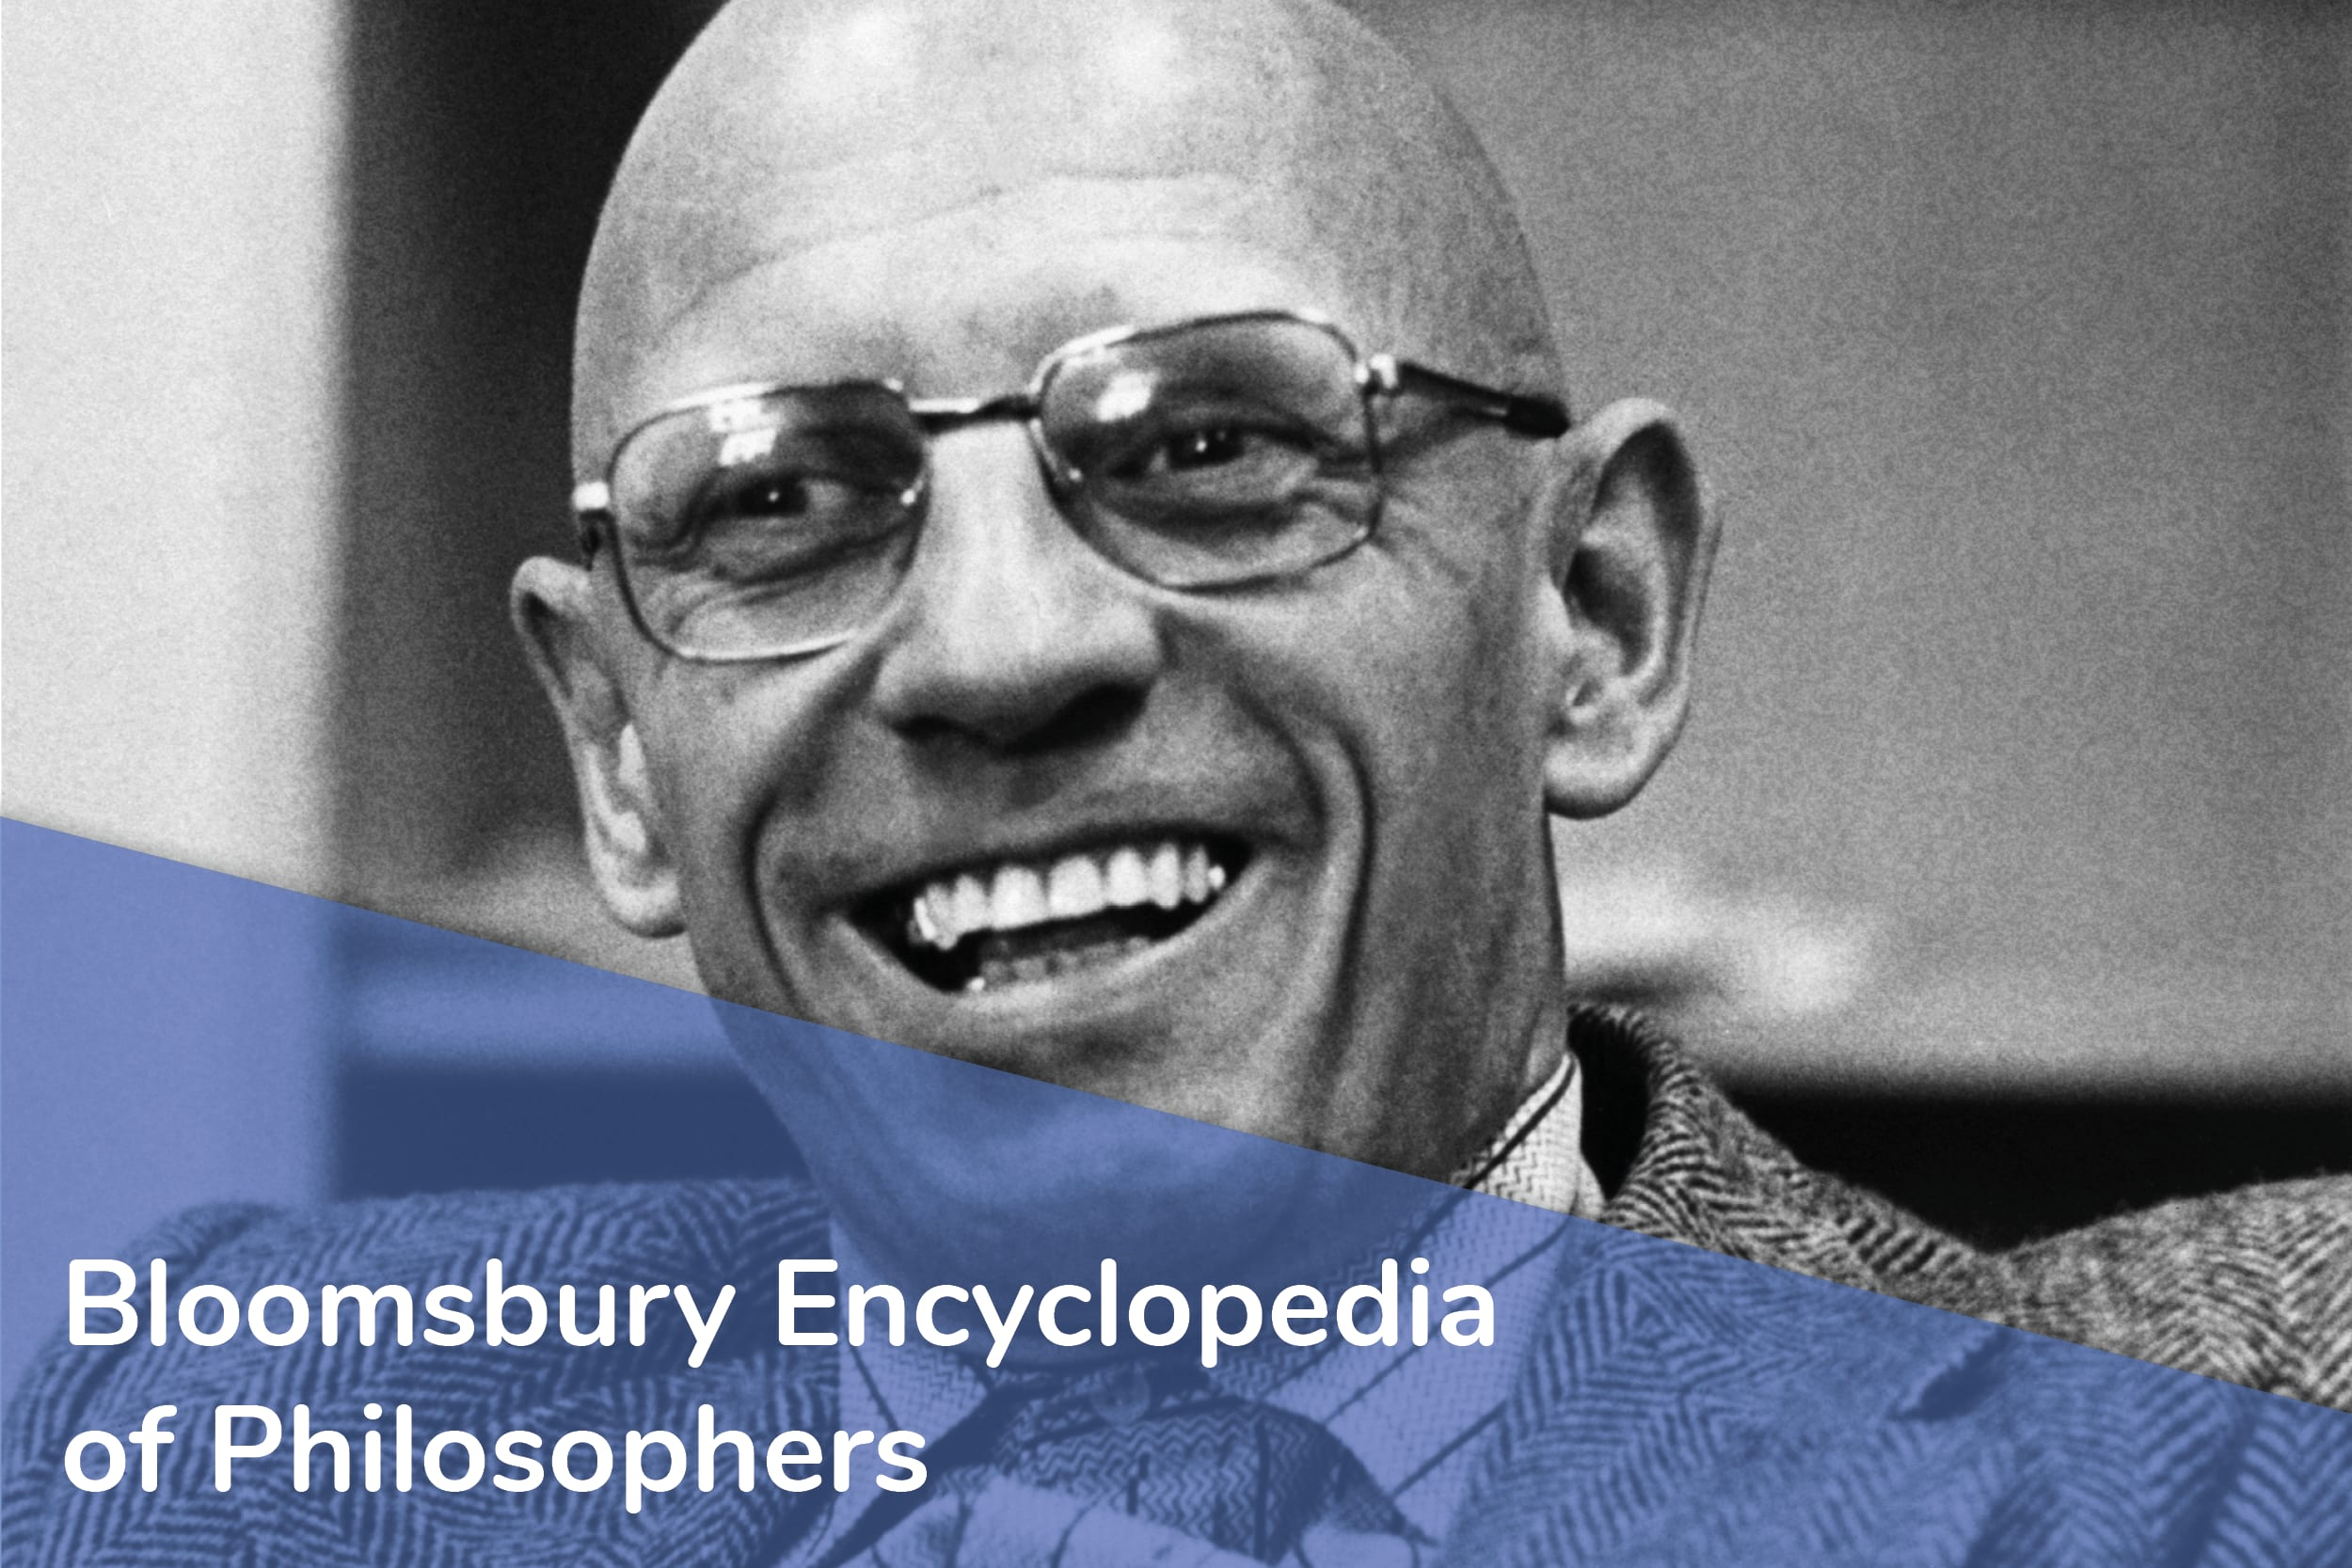 Bloomsbury Encyclopedia of Philosophers